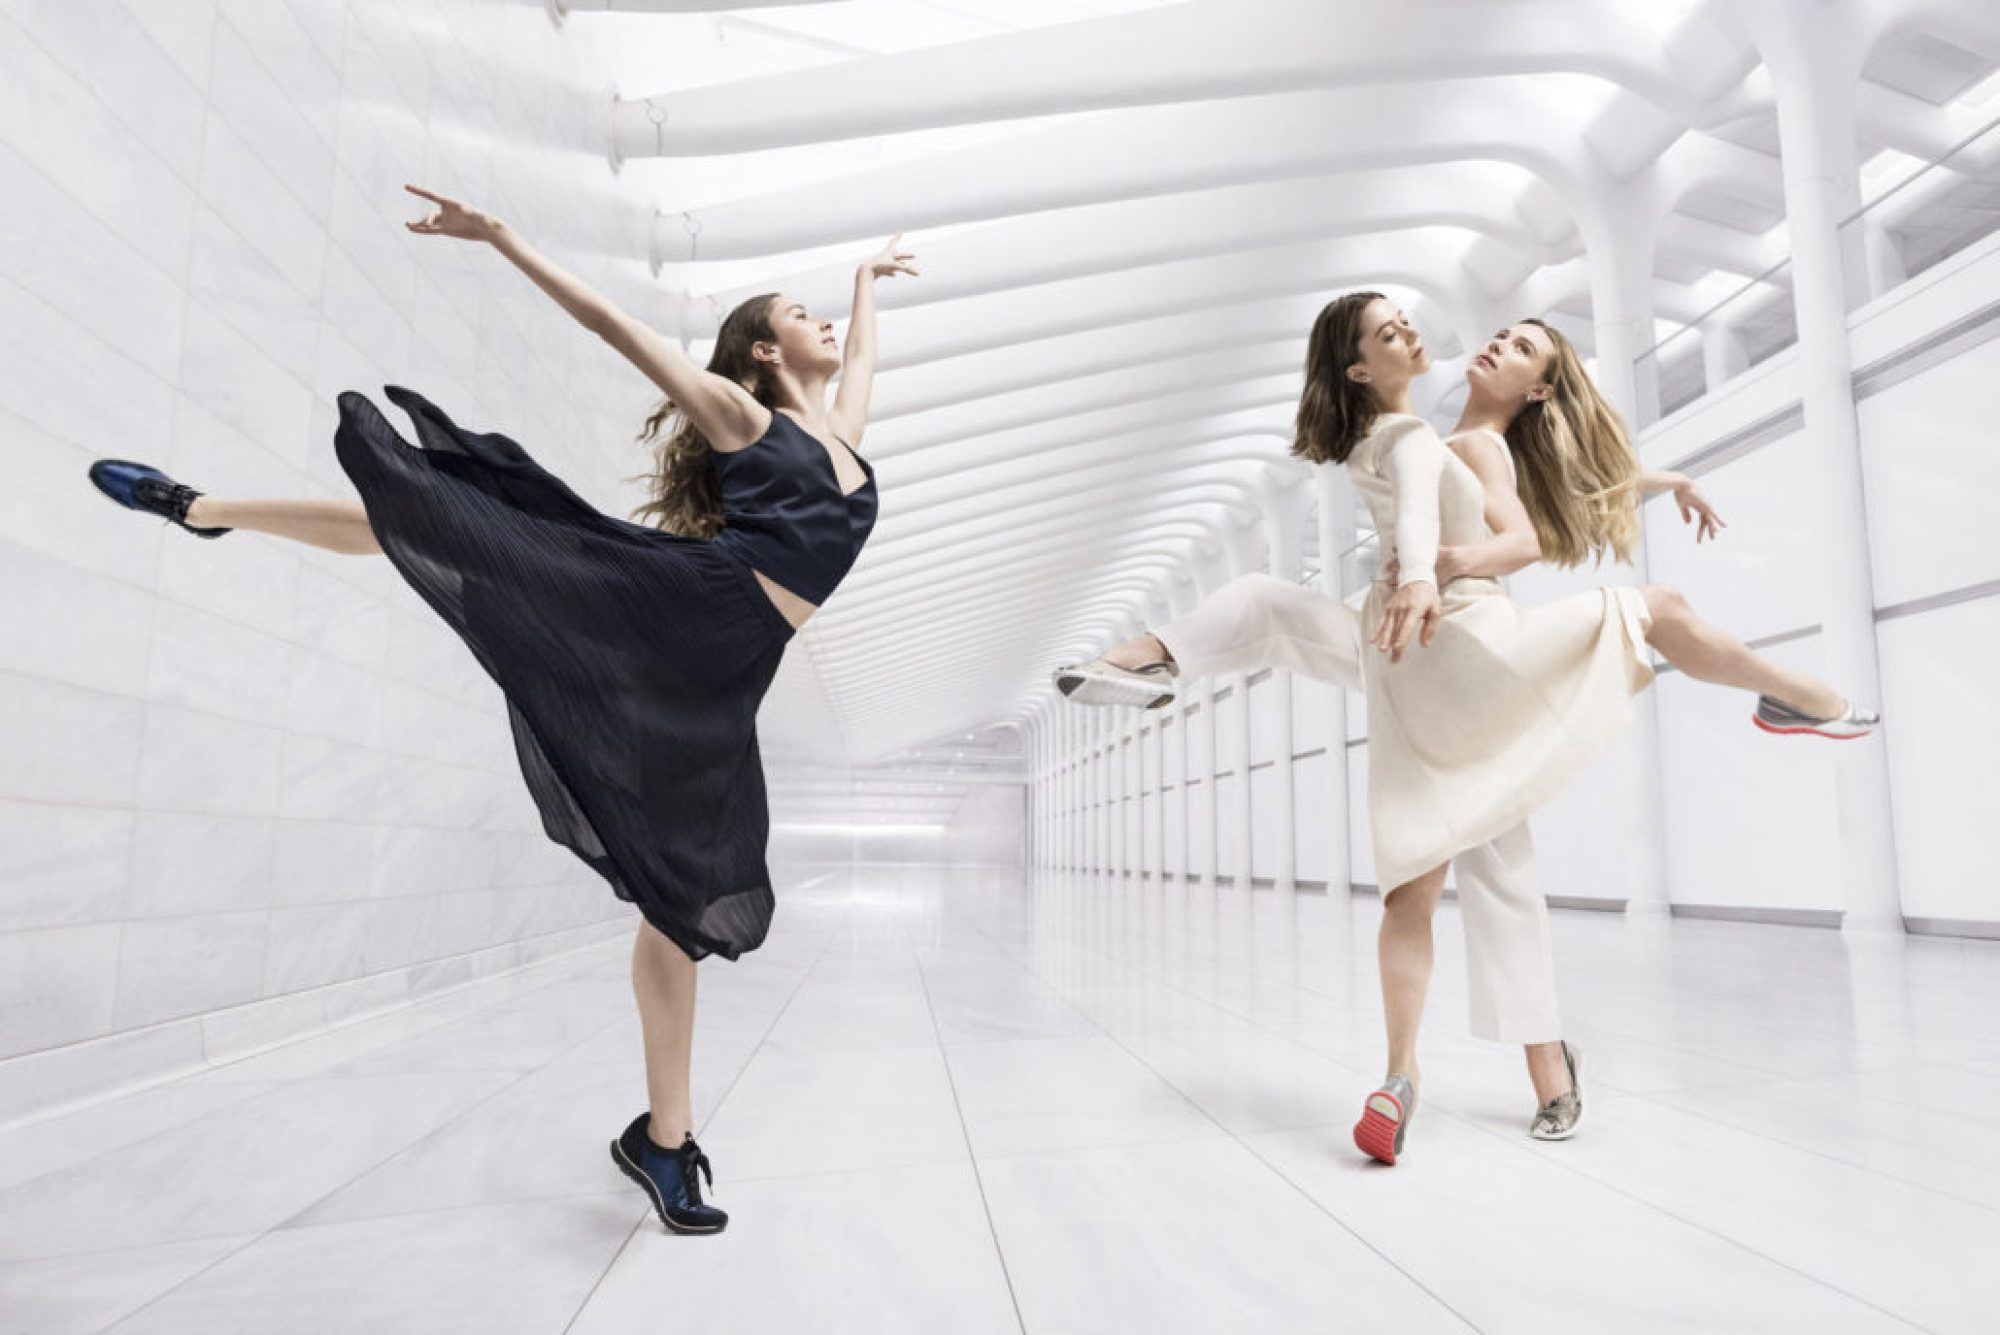 Cole Haan Spring 16 Campaign – The Art of Elegant Innovation (Gretchen Smith, Megan Fairchild, Sara Mearns) (Photo courtesy of Cole Haan)